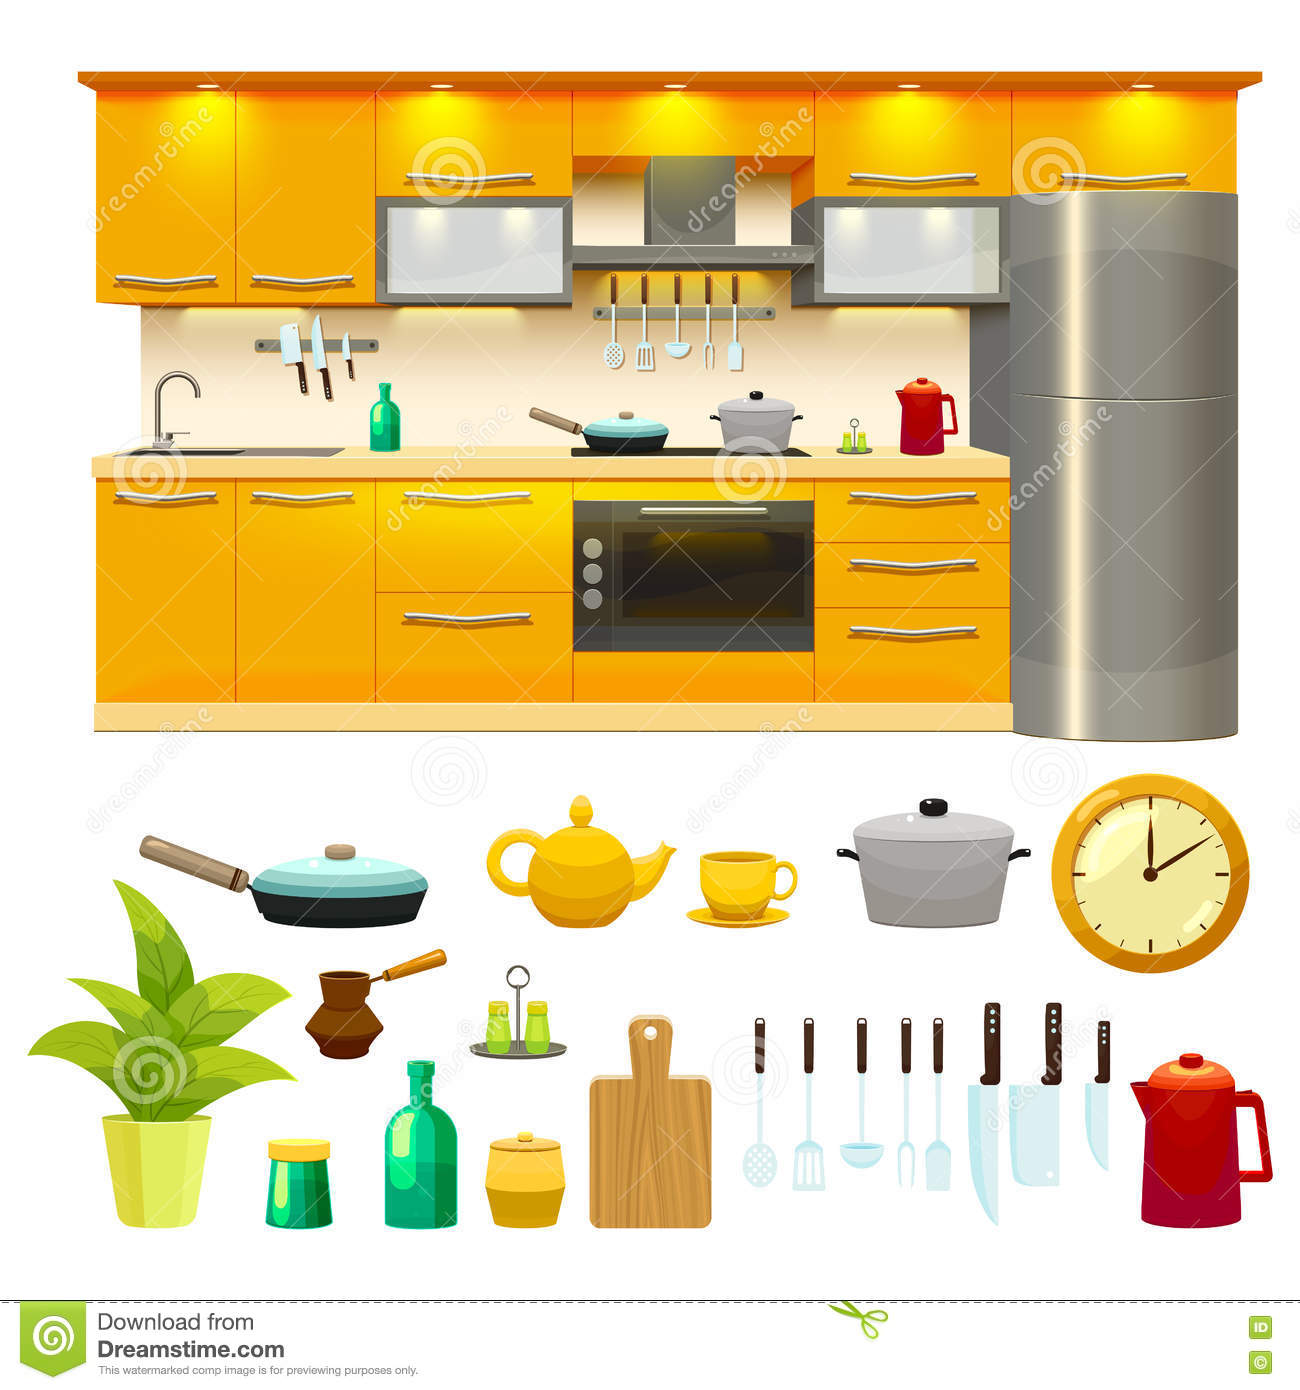 icon kitchen design. kitchen icon png icon kitchen designrecipe